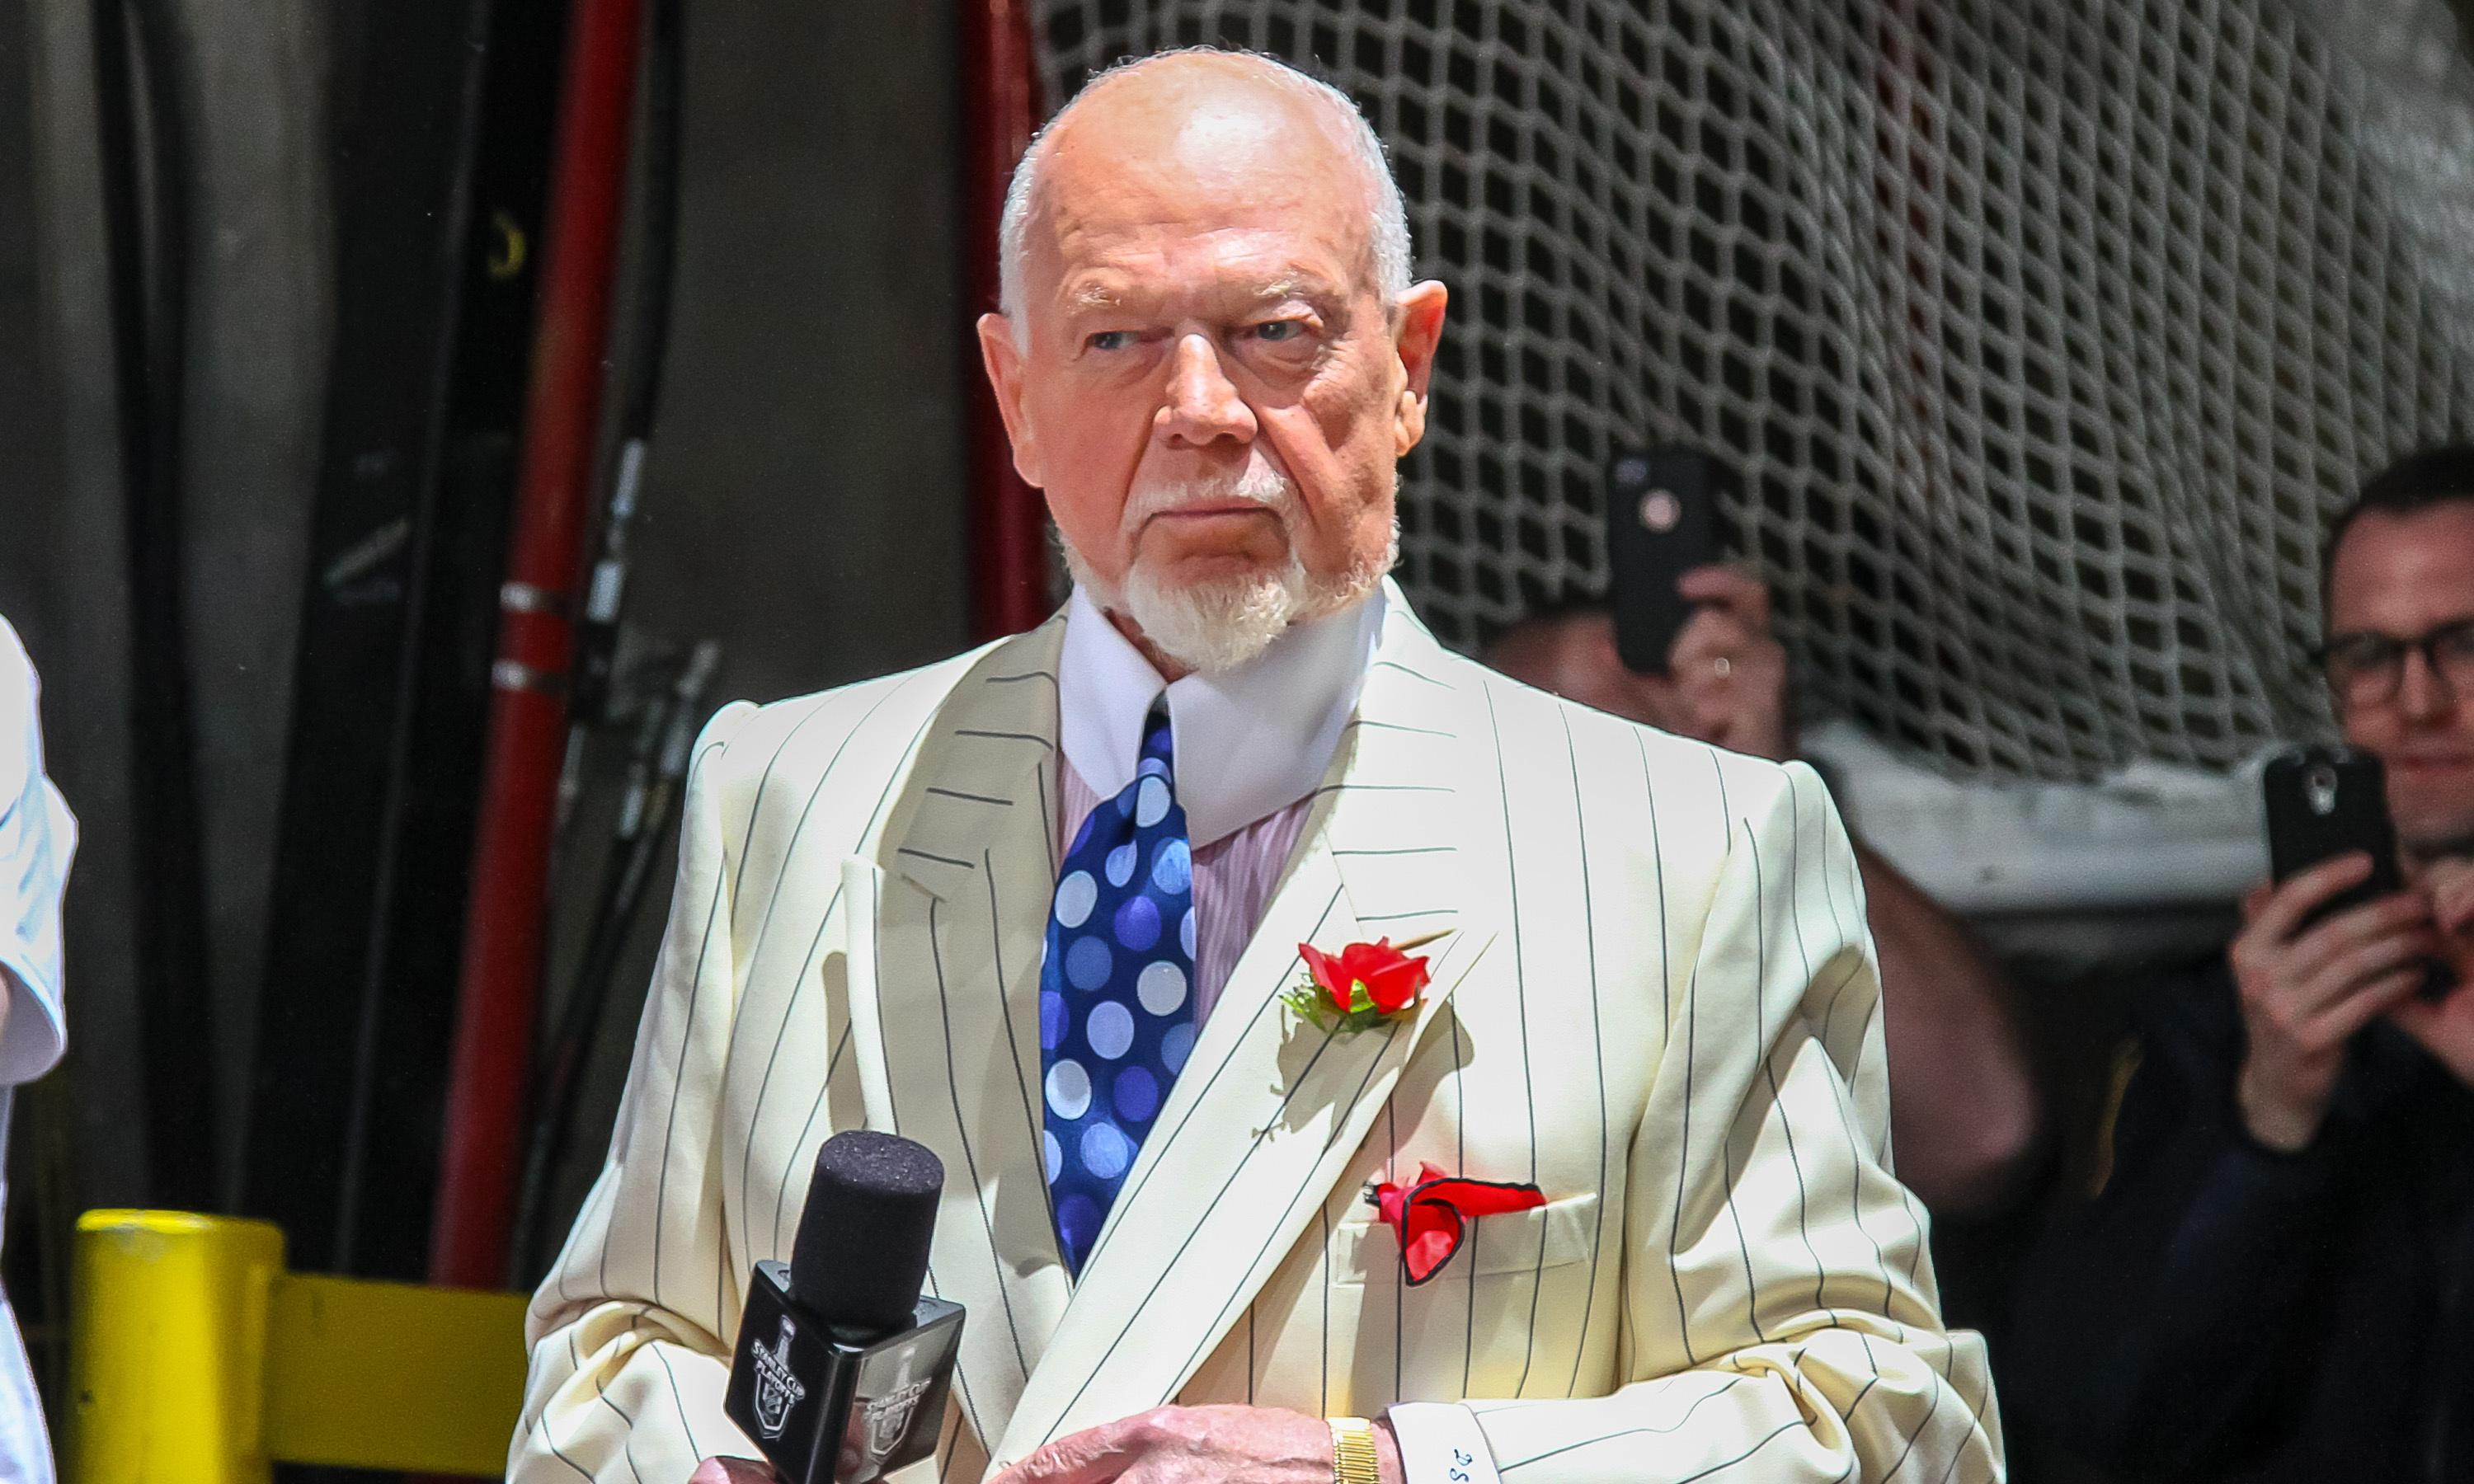 Don Cherry offered job by Russian hockey team to 'talk whatever he thinks'